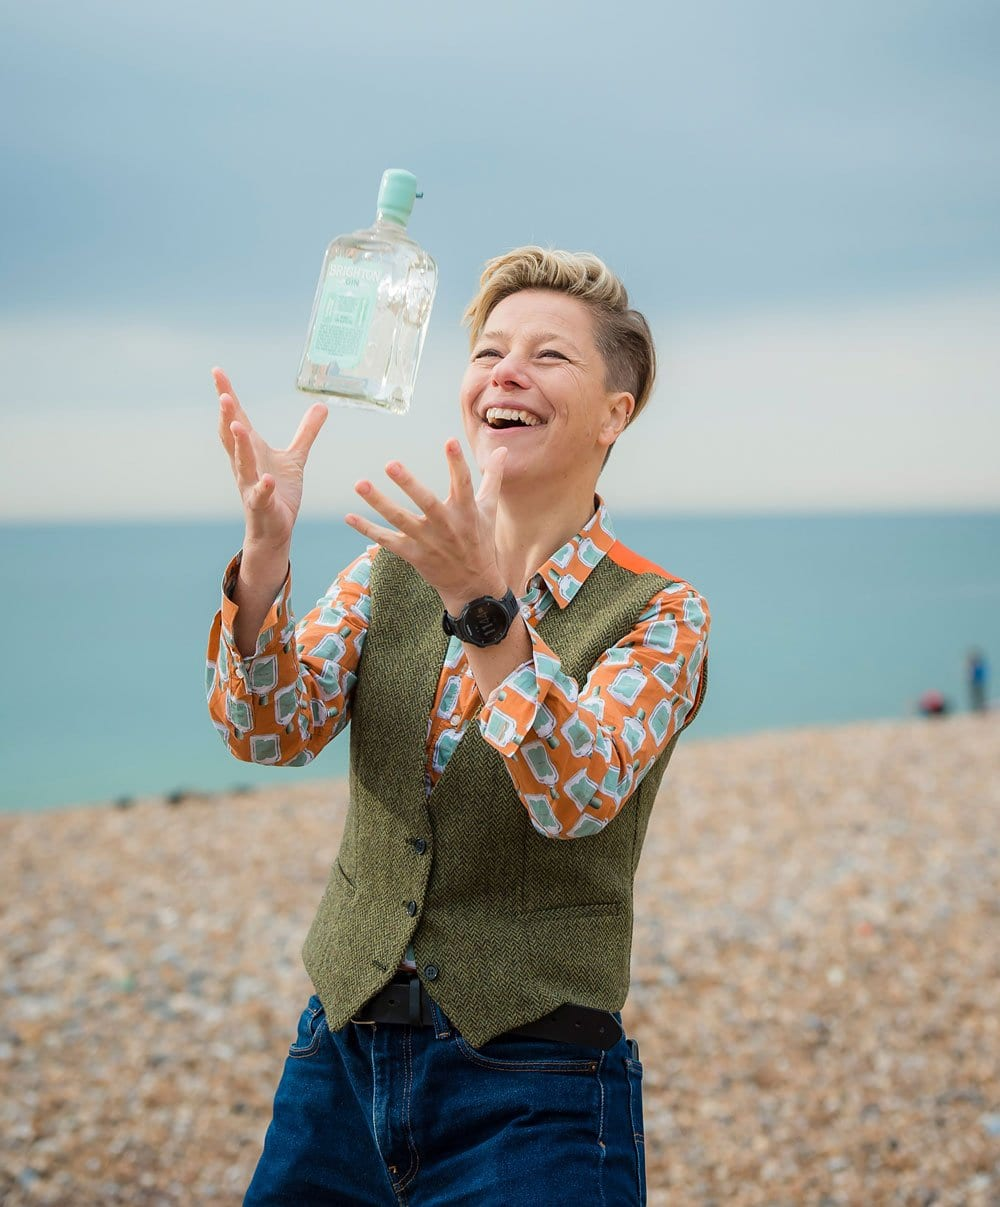 Kathy Caton, Founder and Managing Director of Brighton Gin